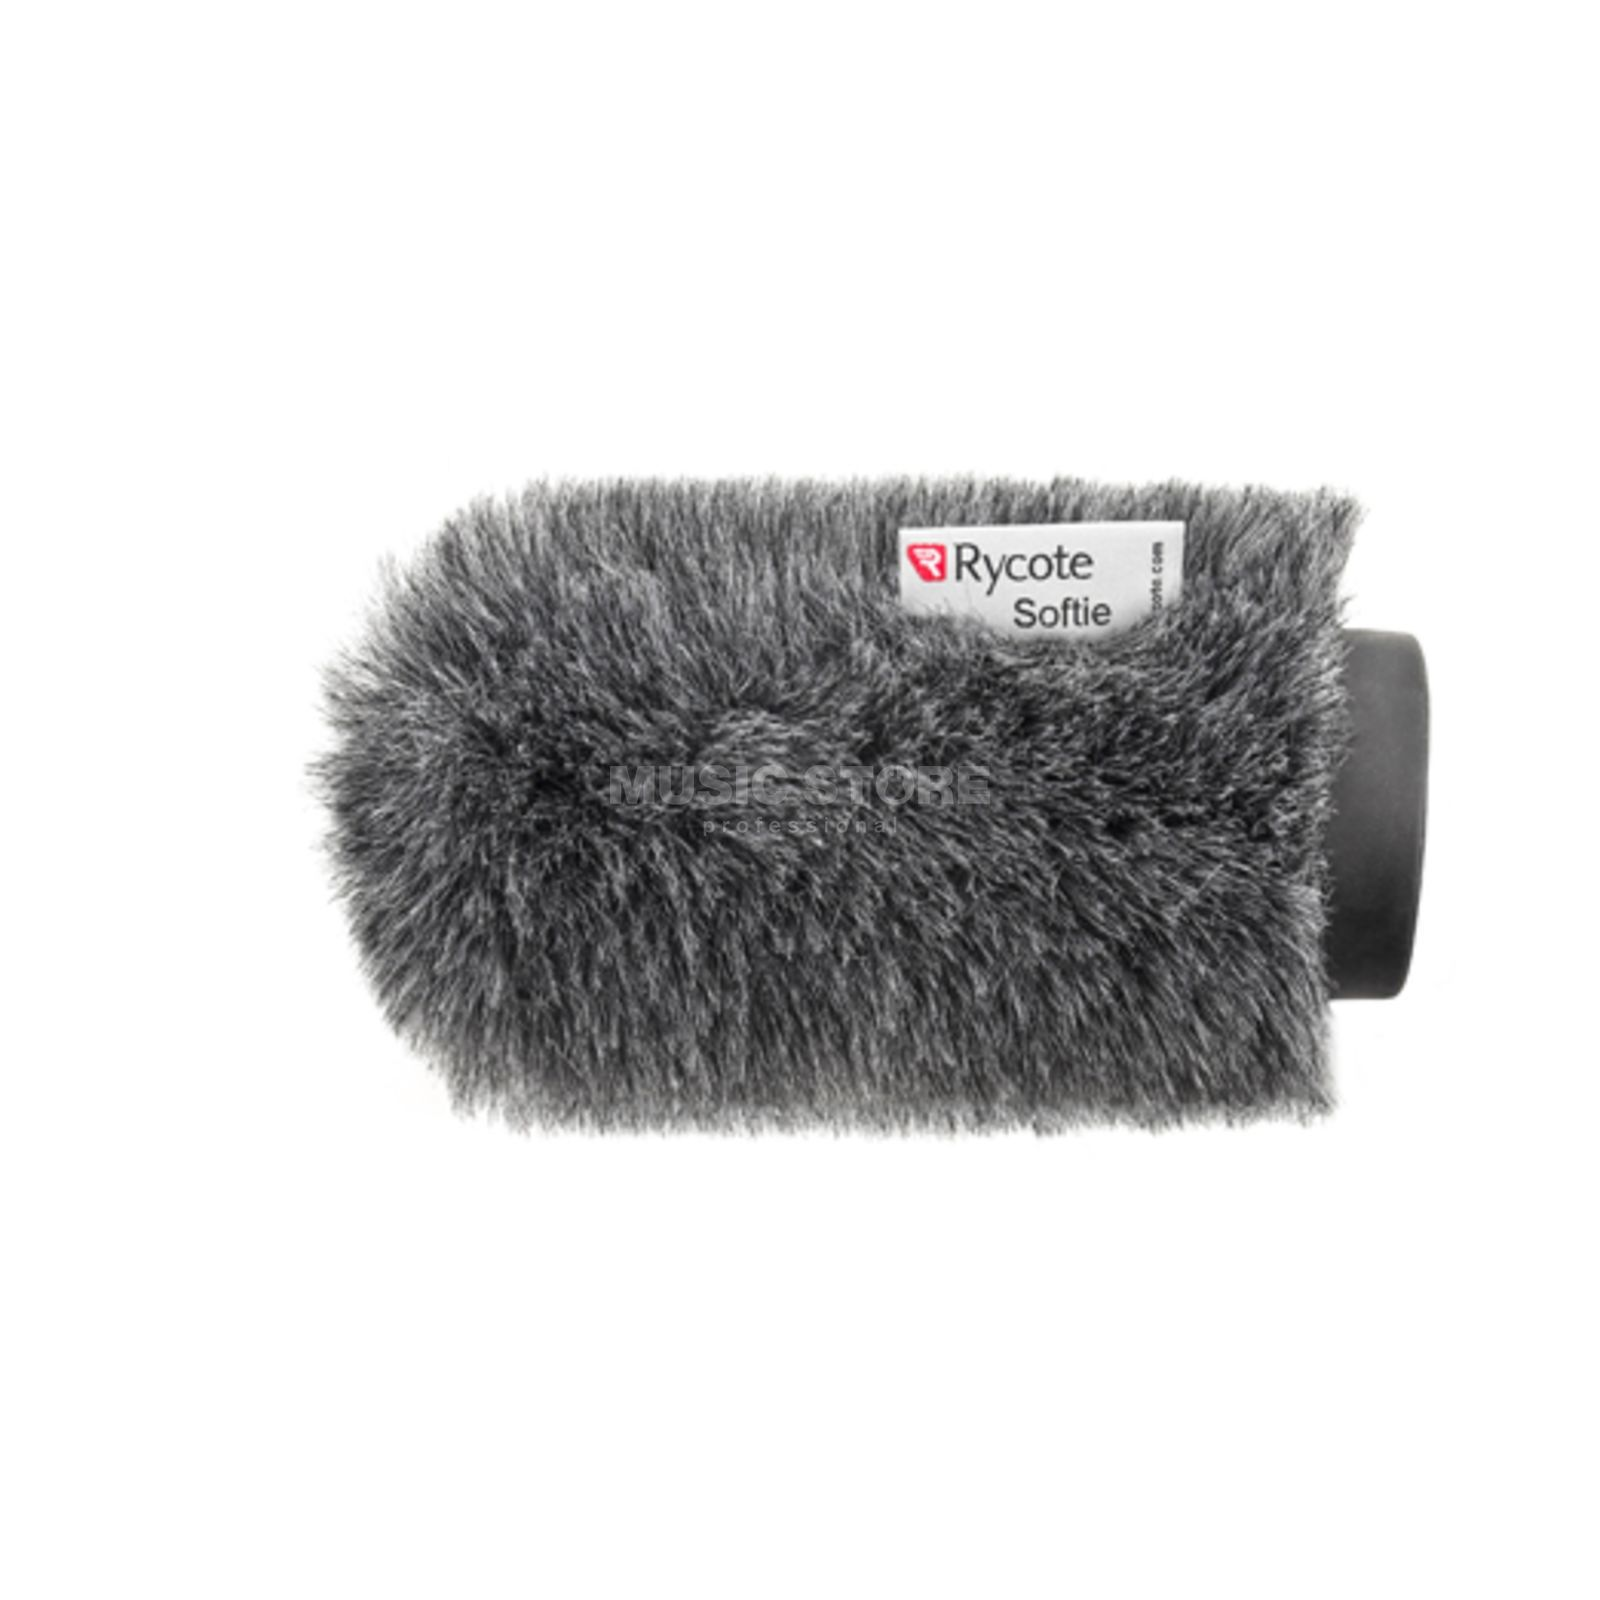 Rycote Classic Softie Windshield 10cm Standard Hole (19-22mm) Produktbild